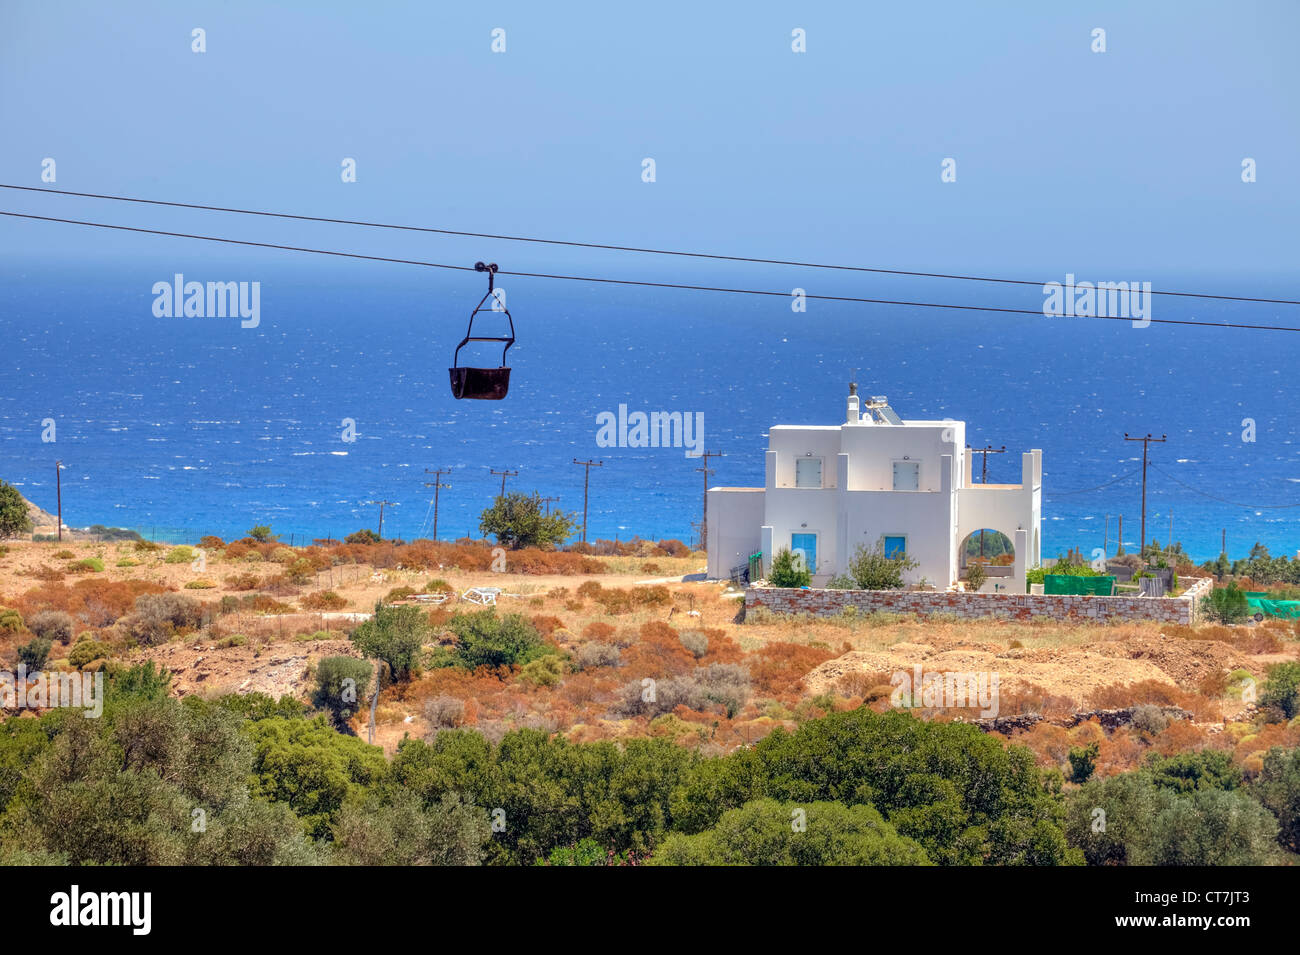 old Lore of the emery extraction at Moutsouna, Naxos, Greece - Stock Image